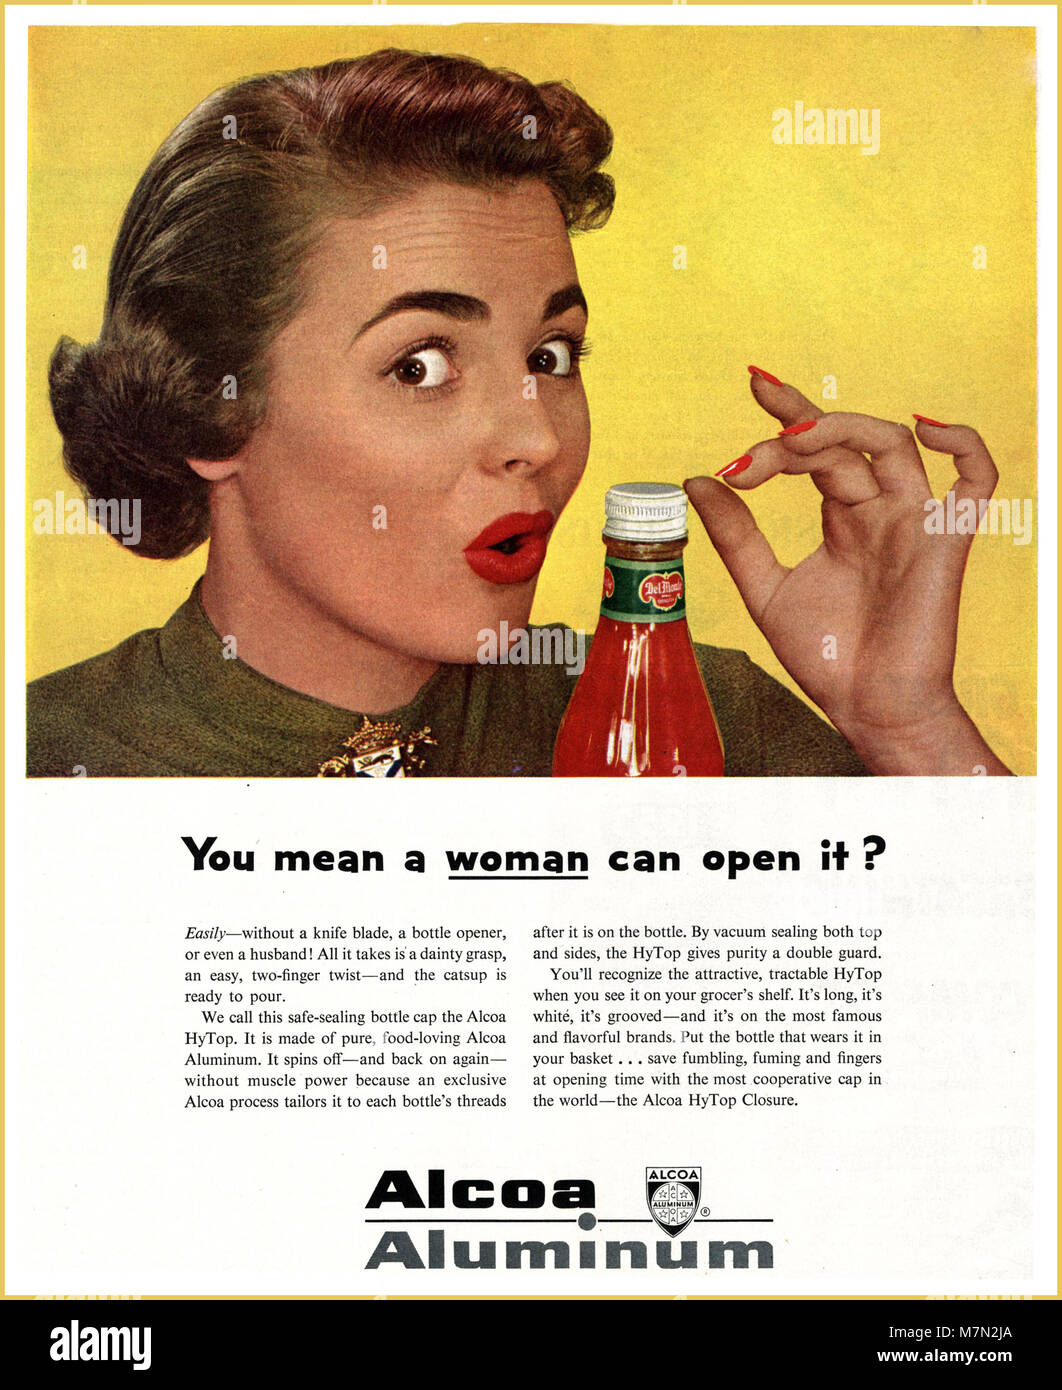 1950's sexist non PC press advertisement for aluminium bottle top made in America USA - Stock Image